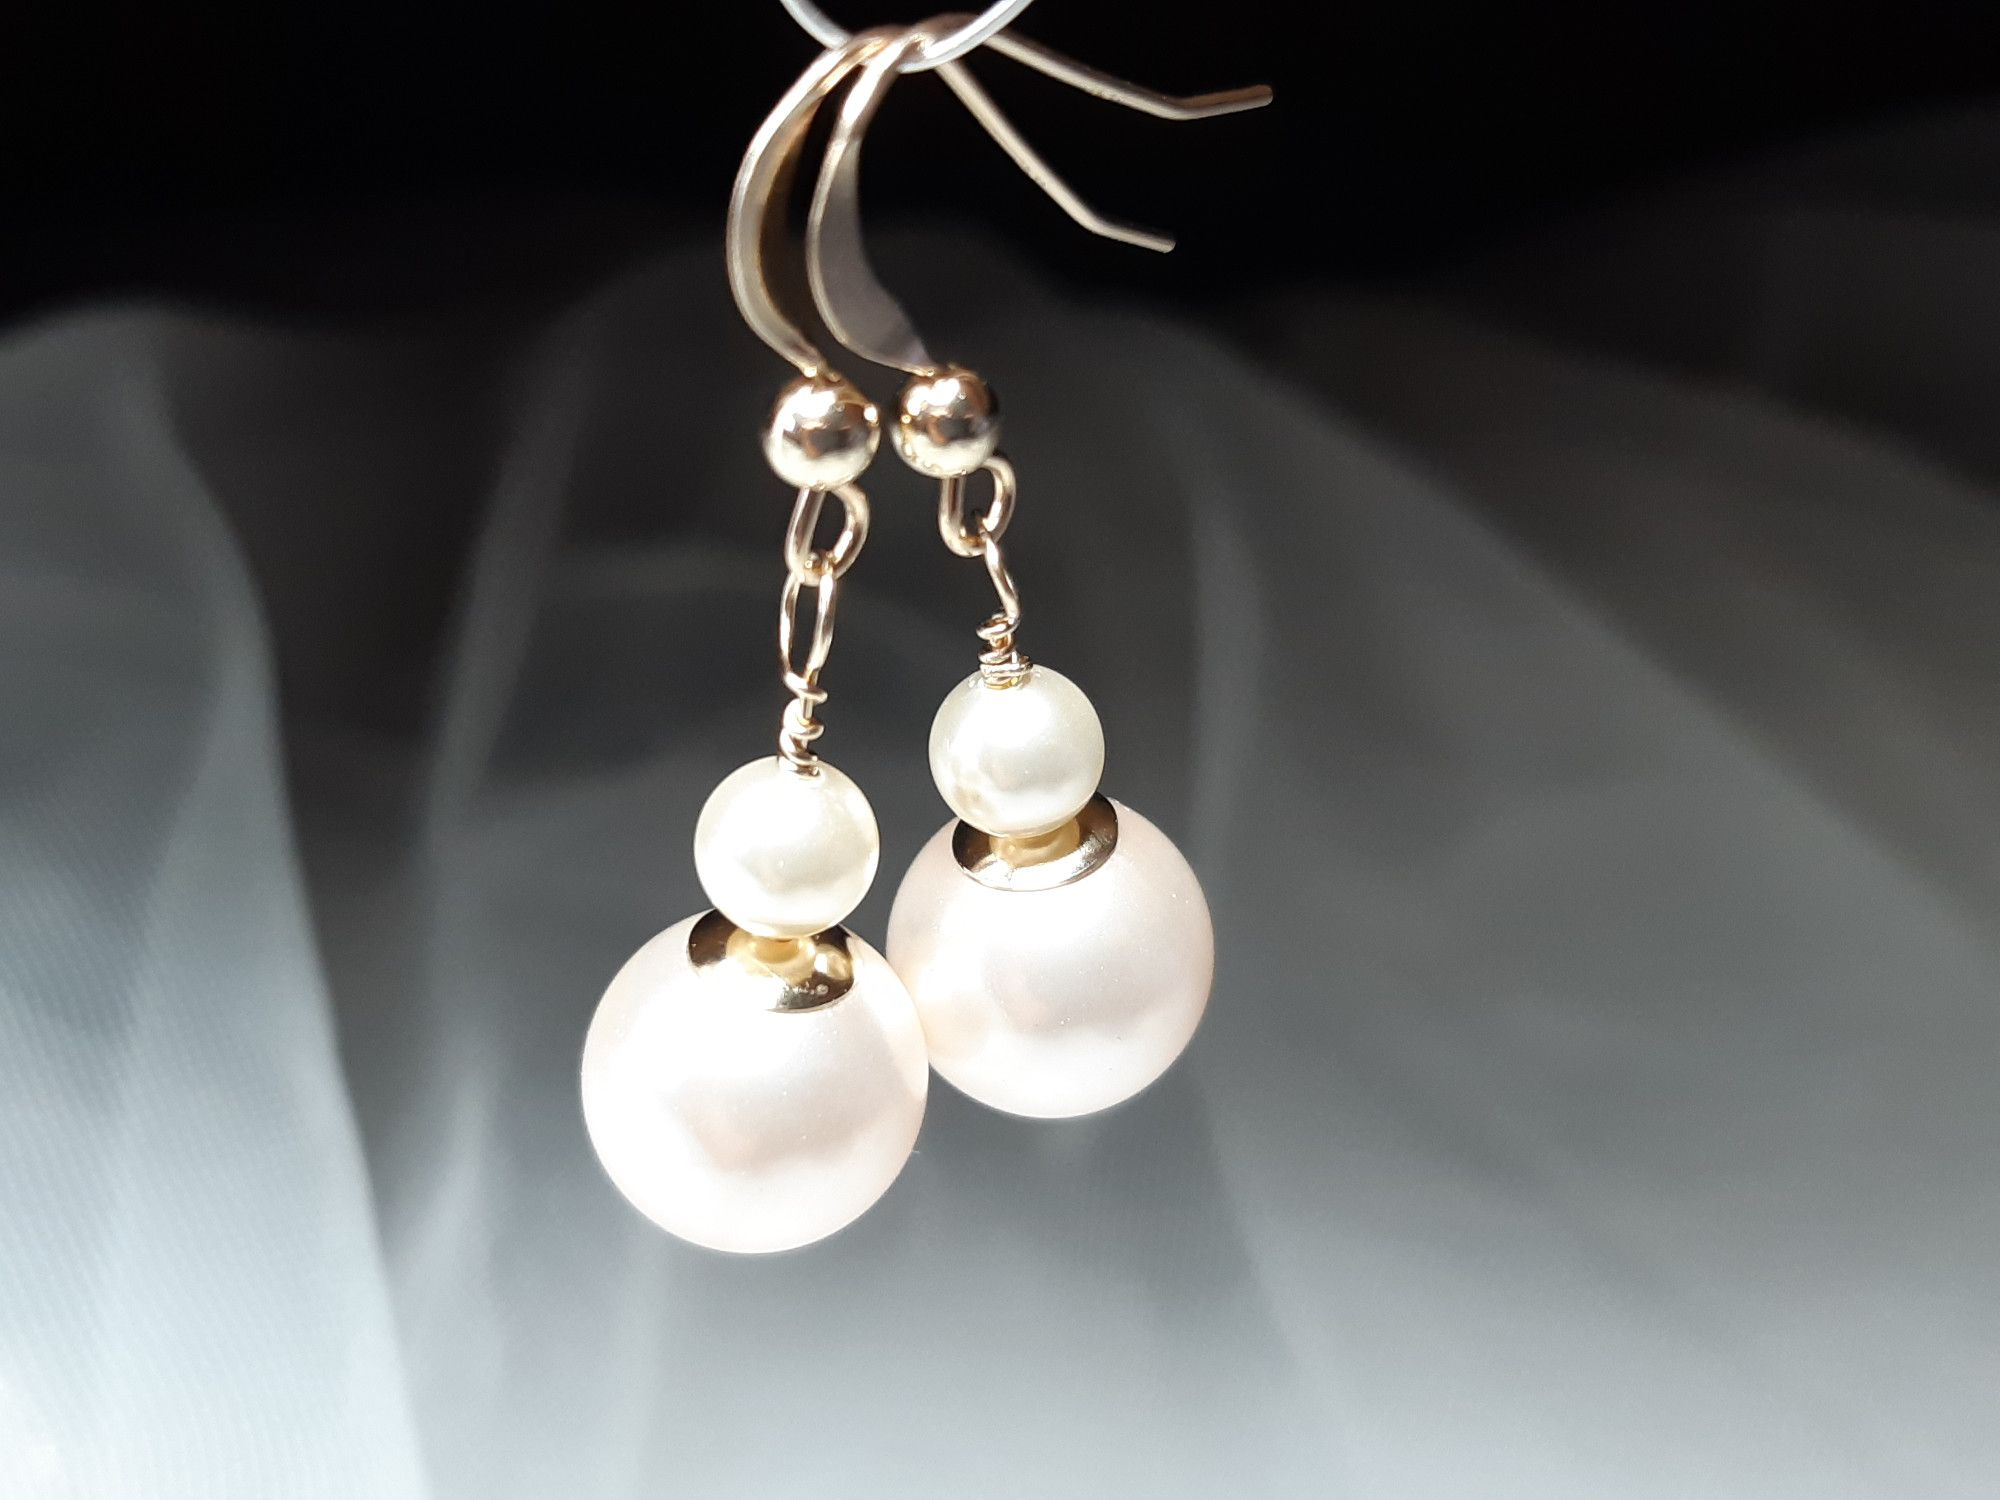 Occasion-bridal-wedding-earrings with 14K gold & pearls-3.jpg